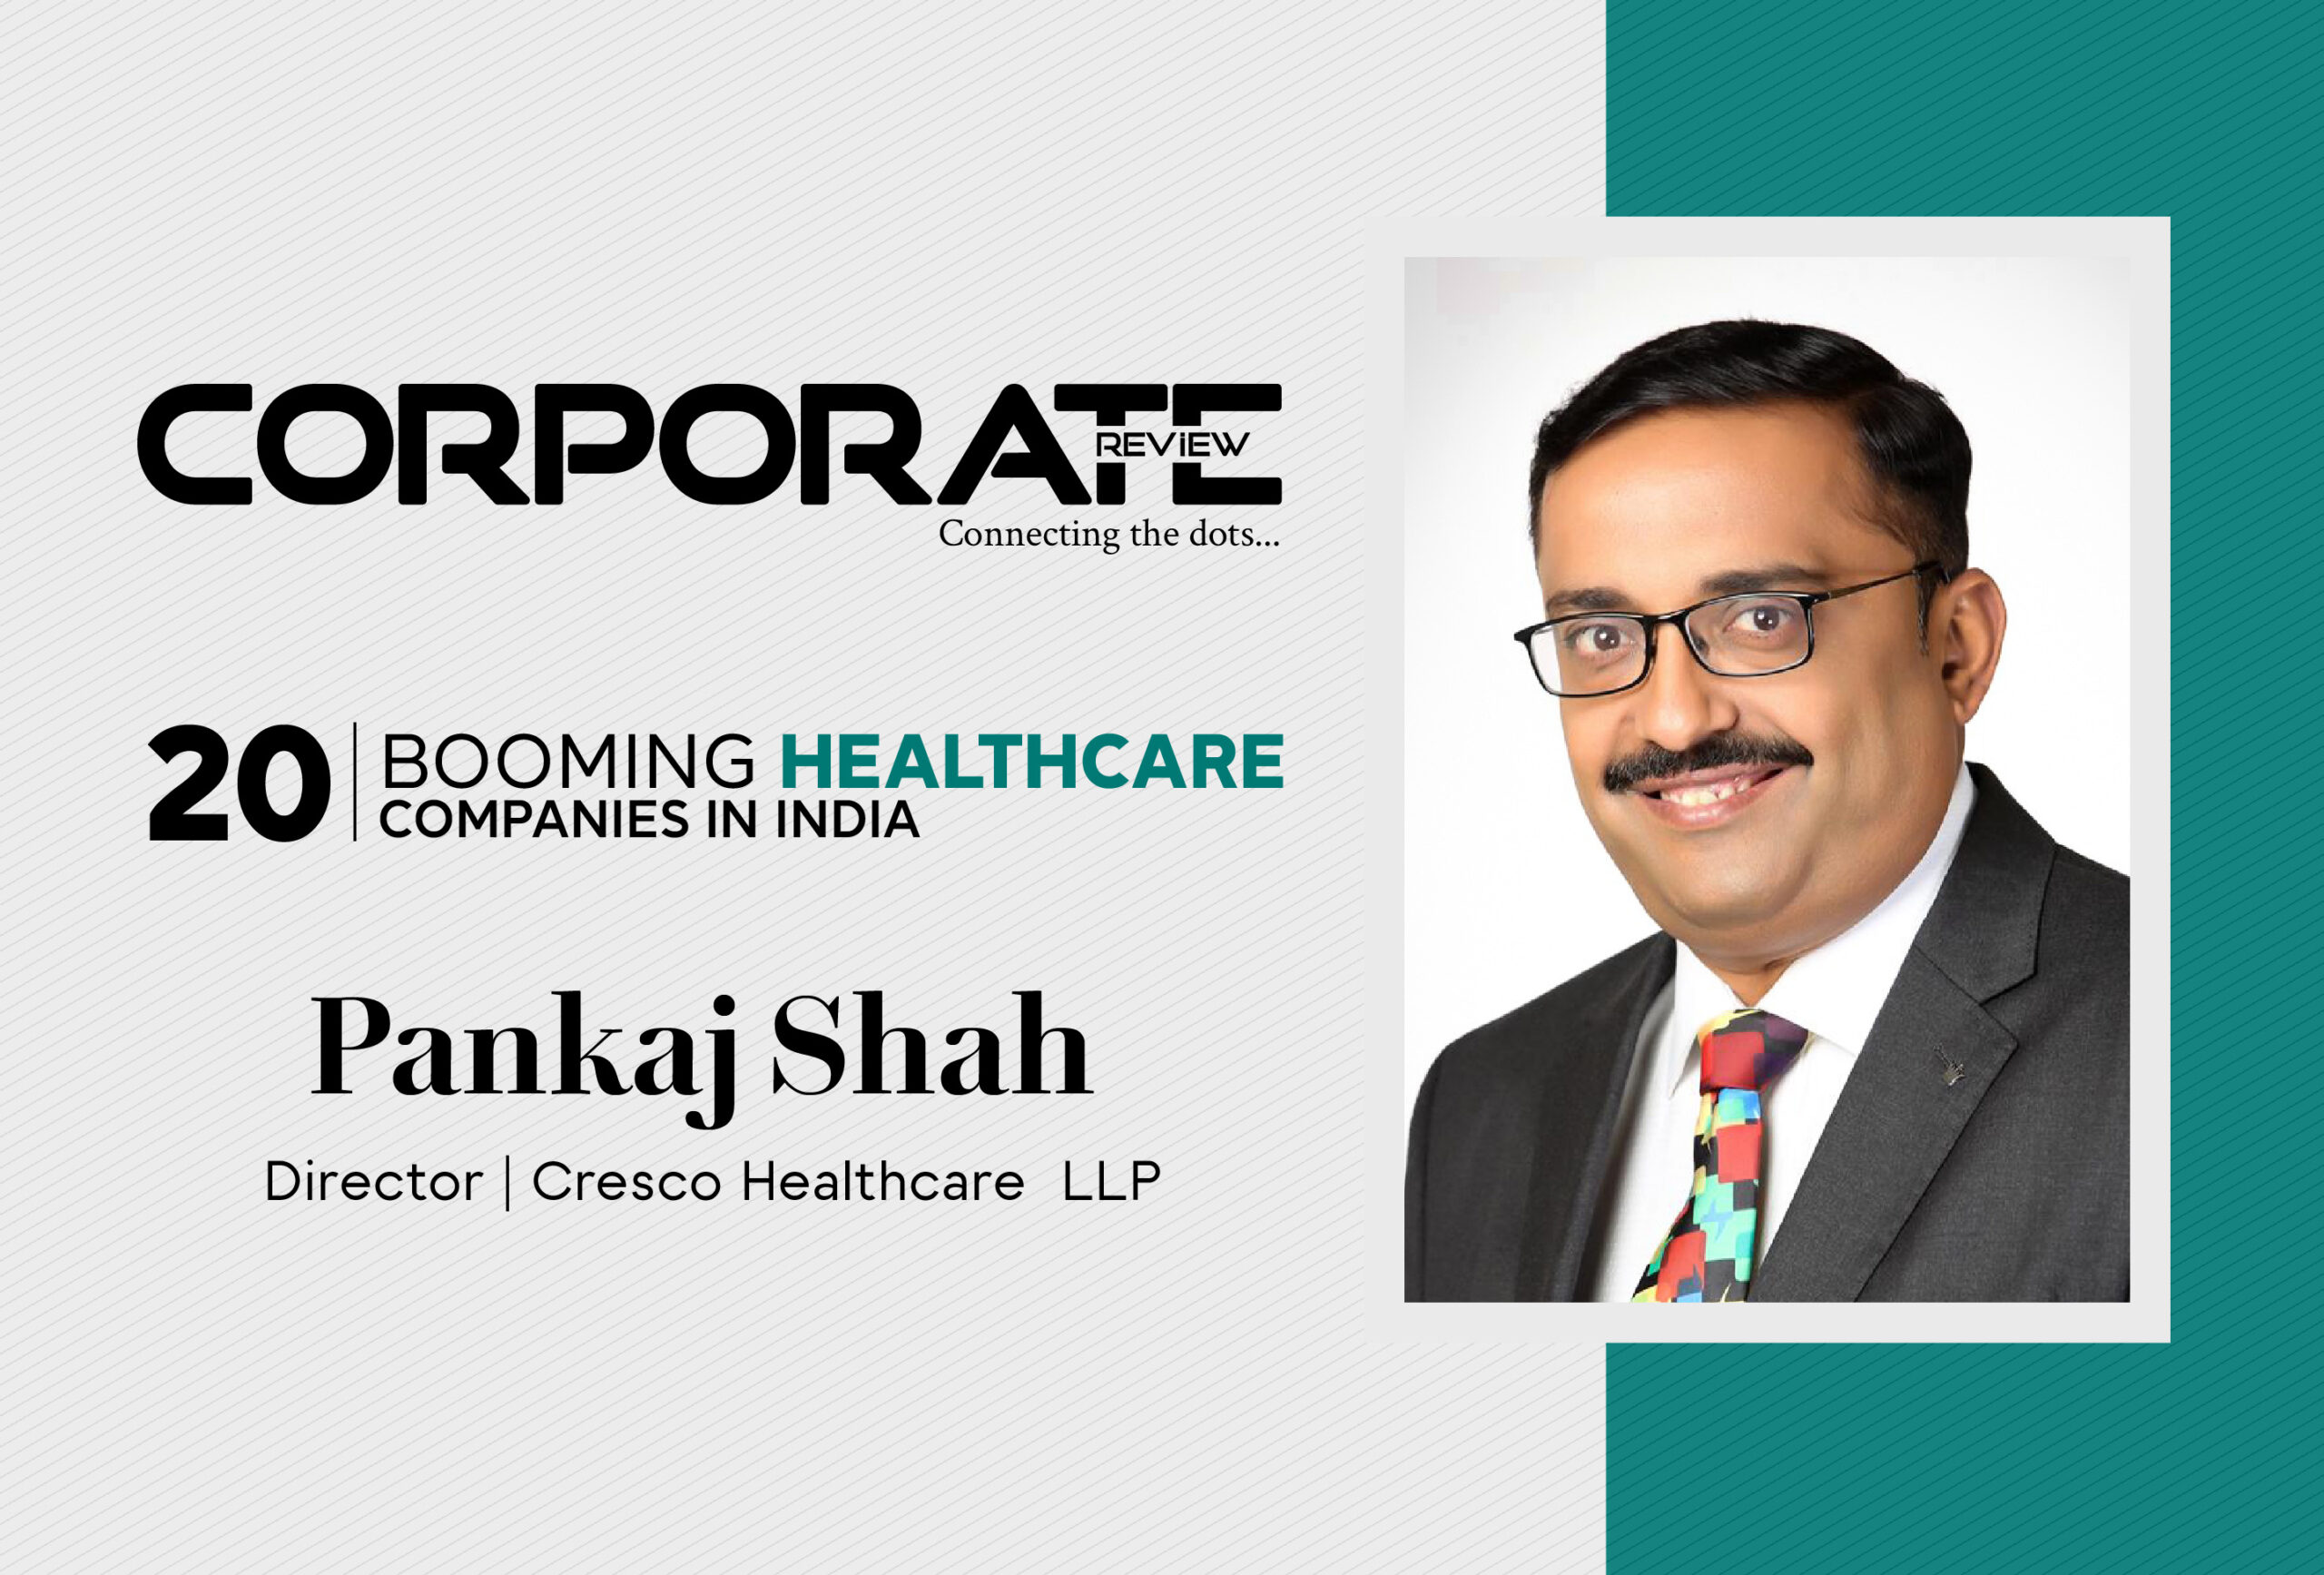 Cresco Healthcare LLP: creating a new revolution in the diagnostics industry as a home-service pathology platform